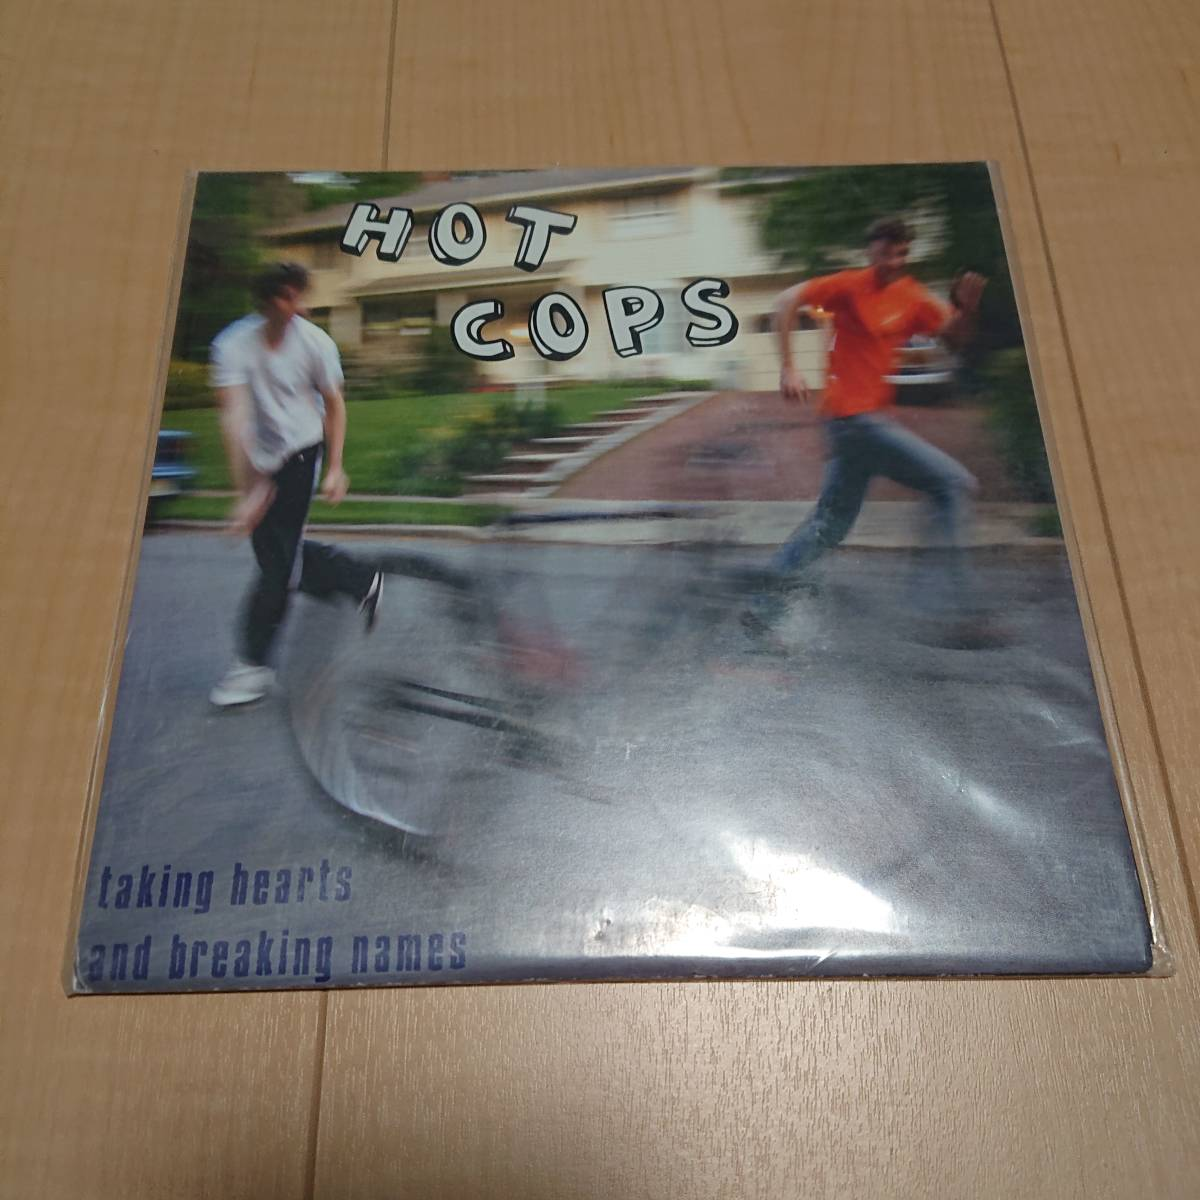 【Hot Cops - Taking Hearts And Breaking Names】chisel superchunk starmarket